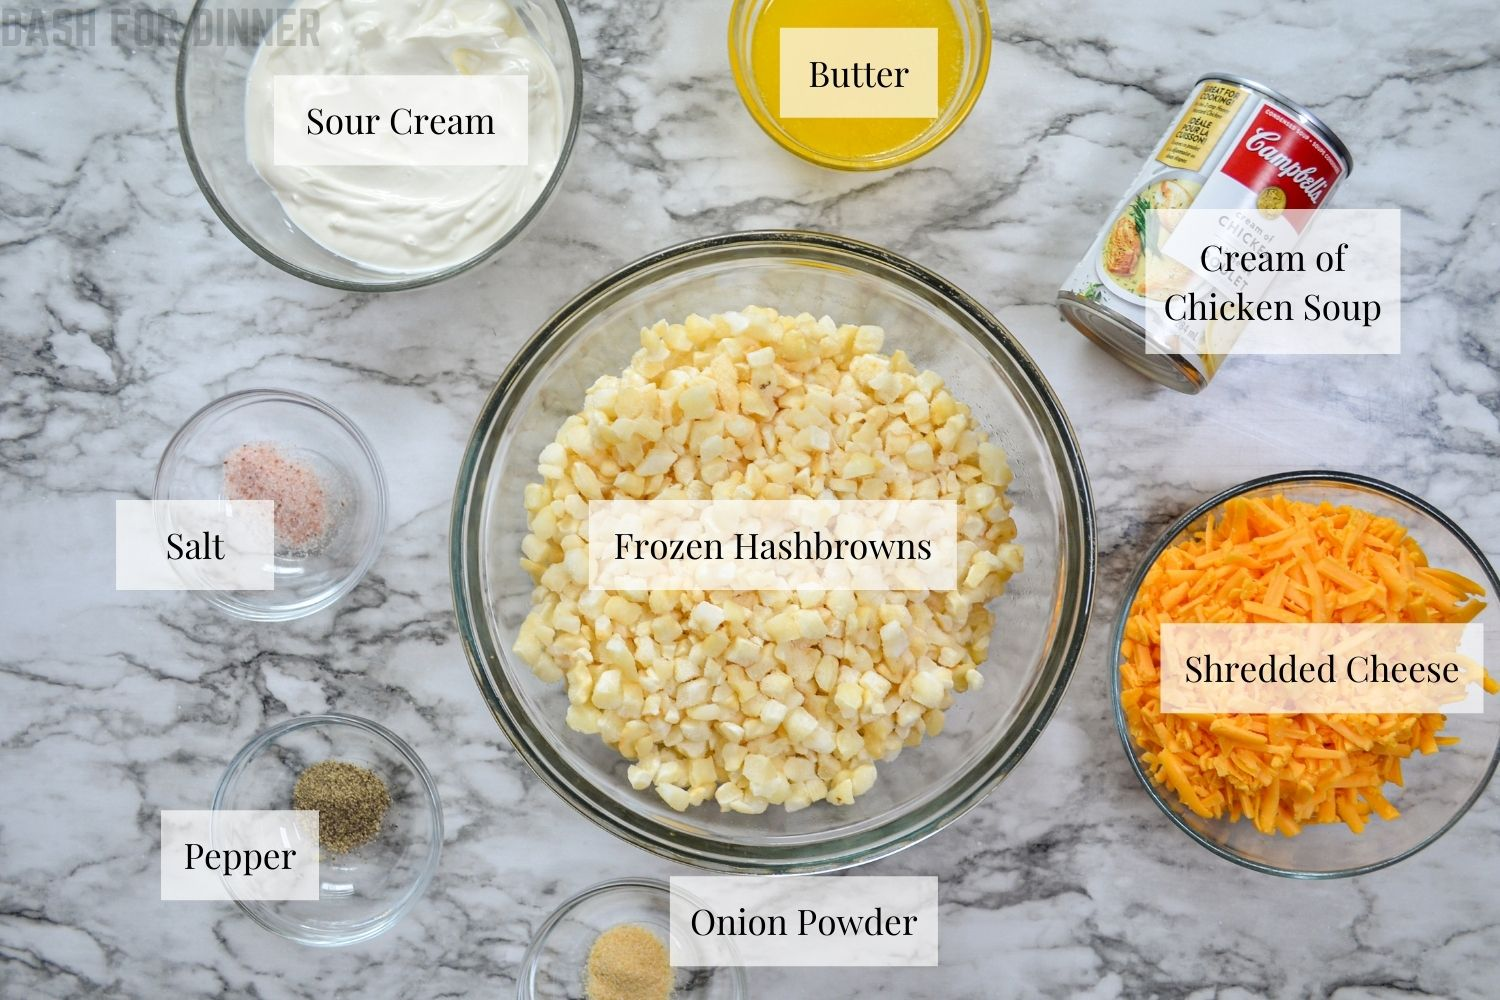 The ingredients needed to make slow cooker cheesy hashbrown casserole.